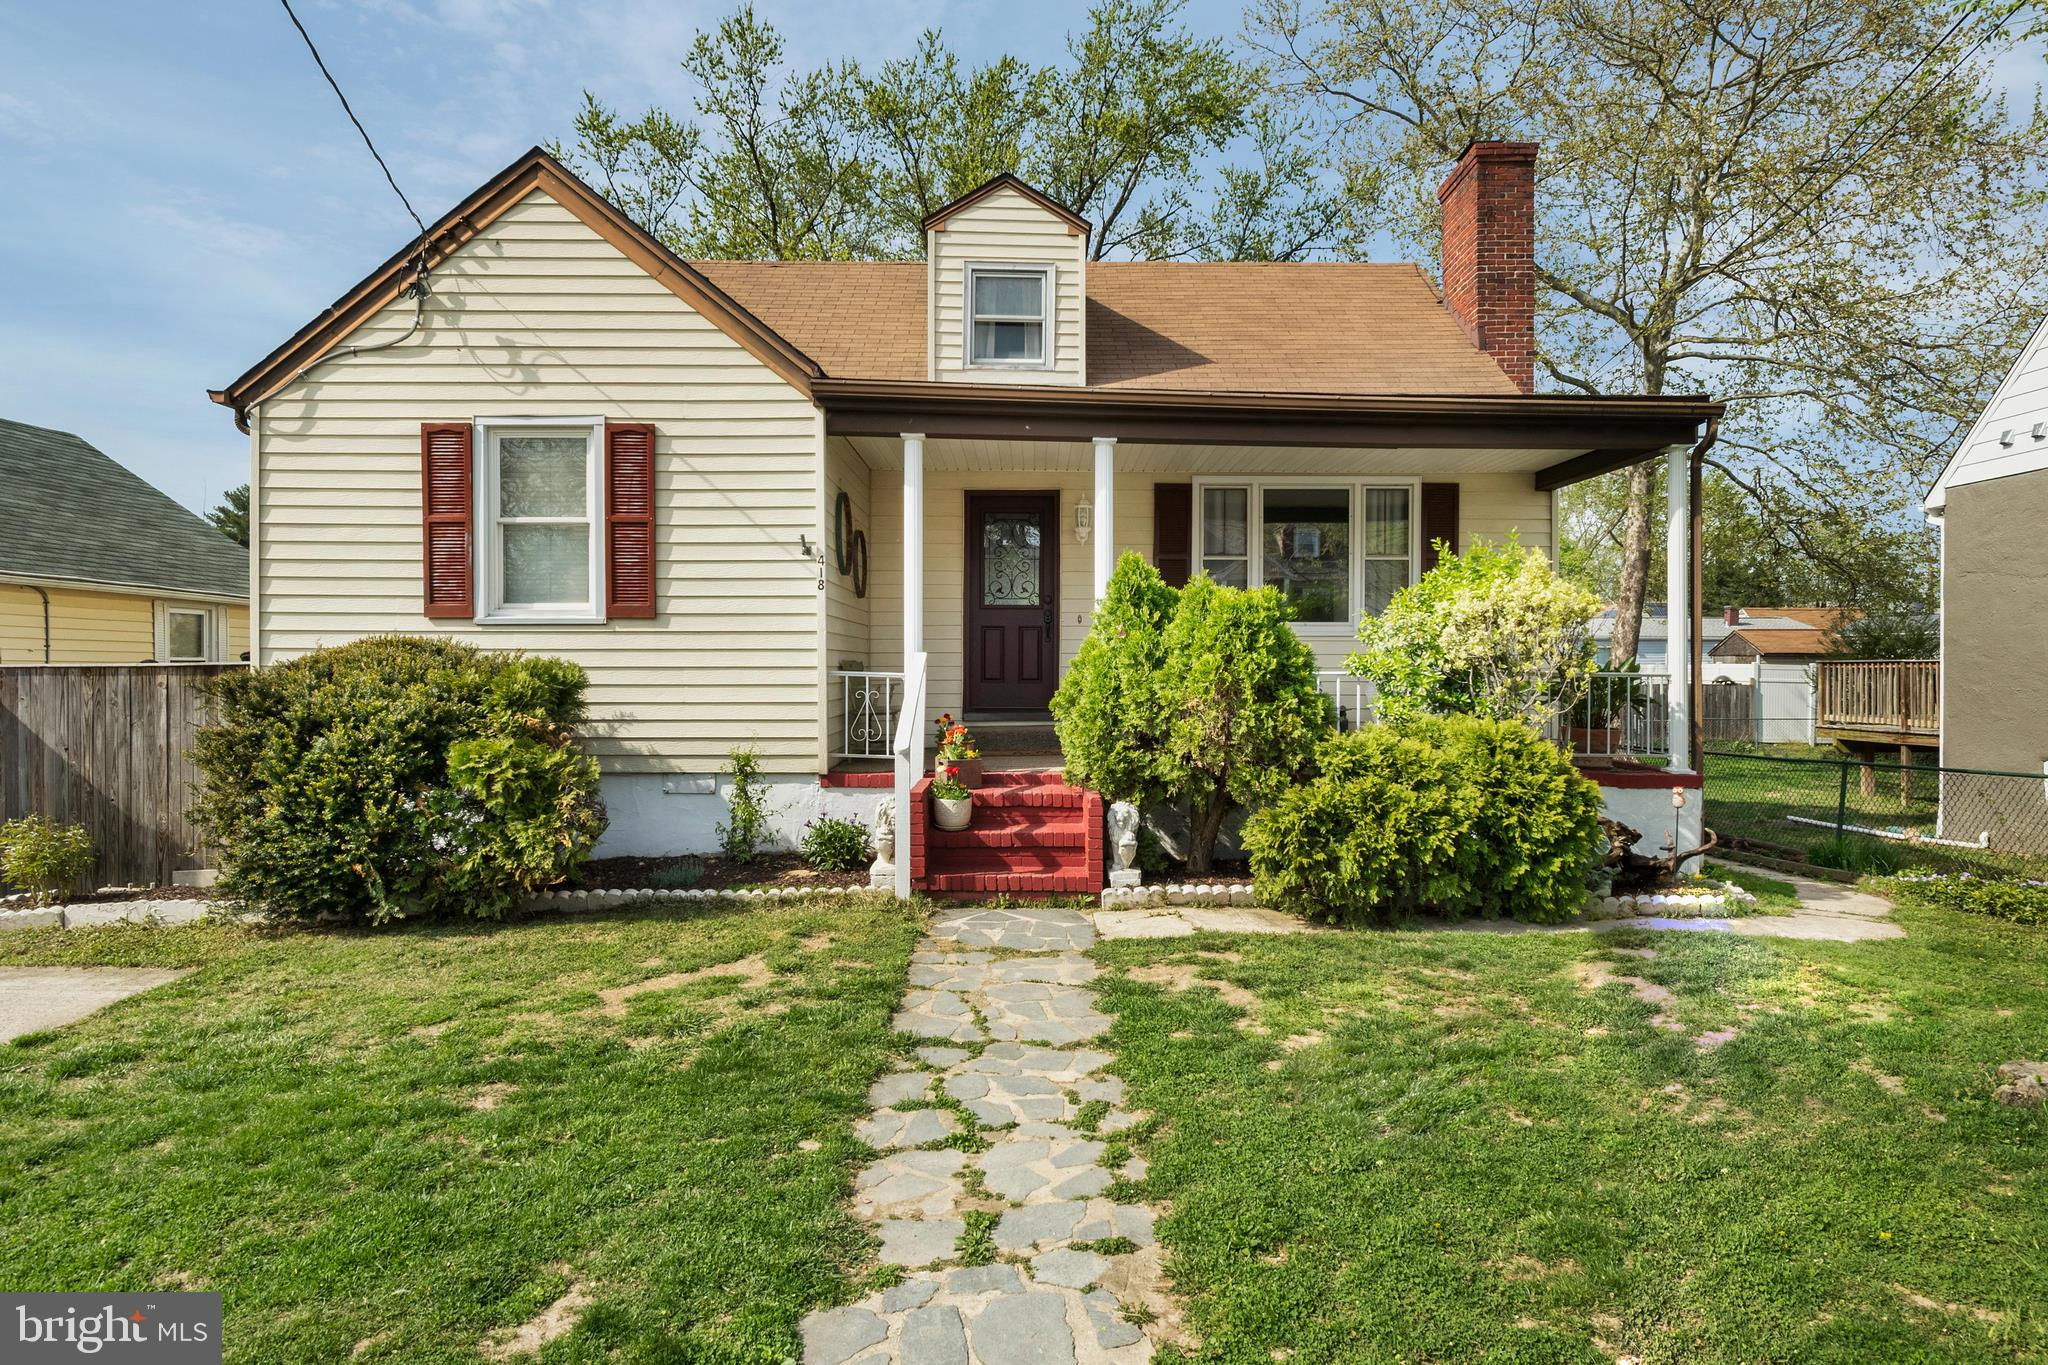 418 CRESSWELL ROAD, BALTIMORE, MD 21225